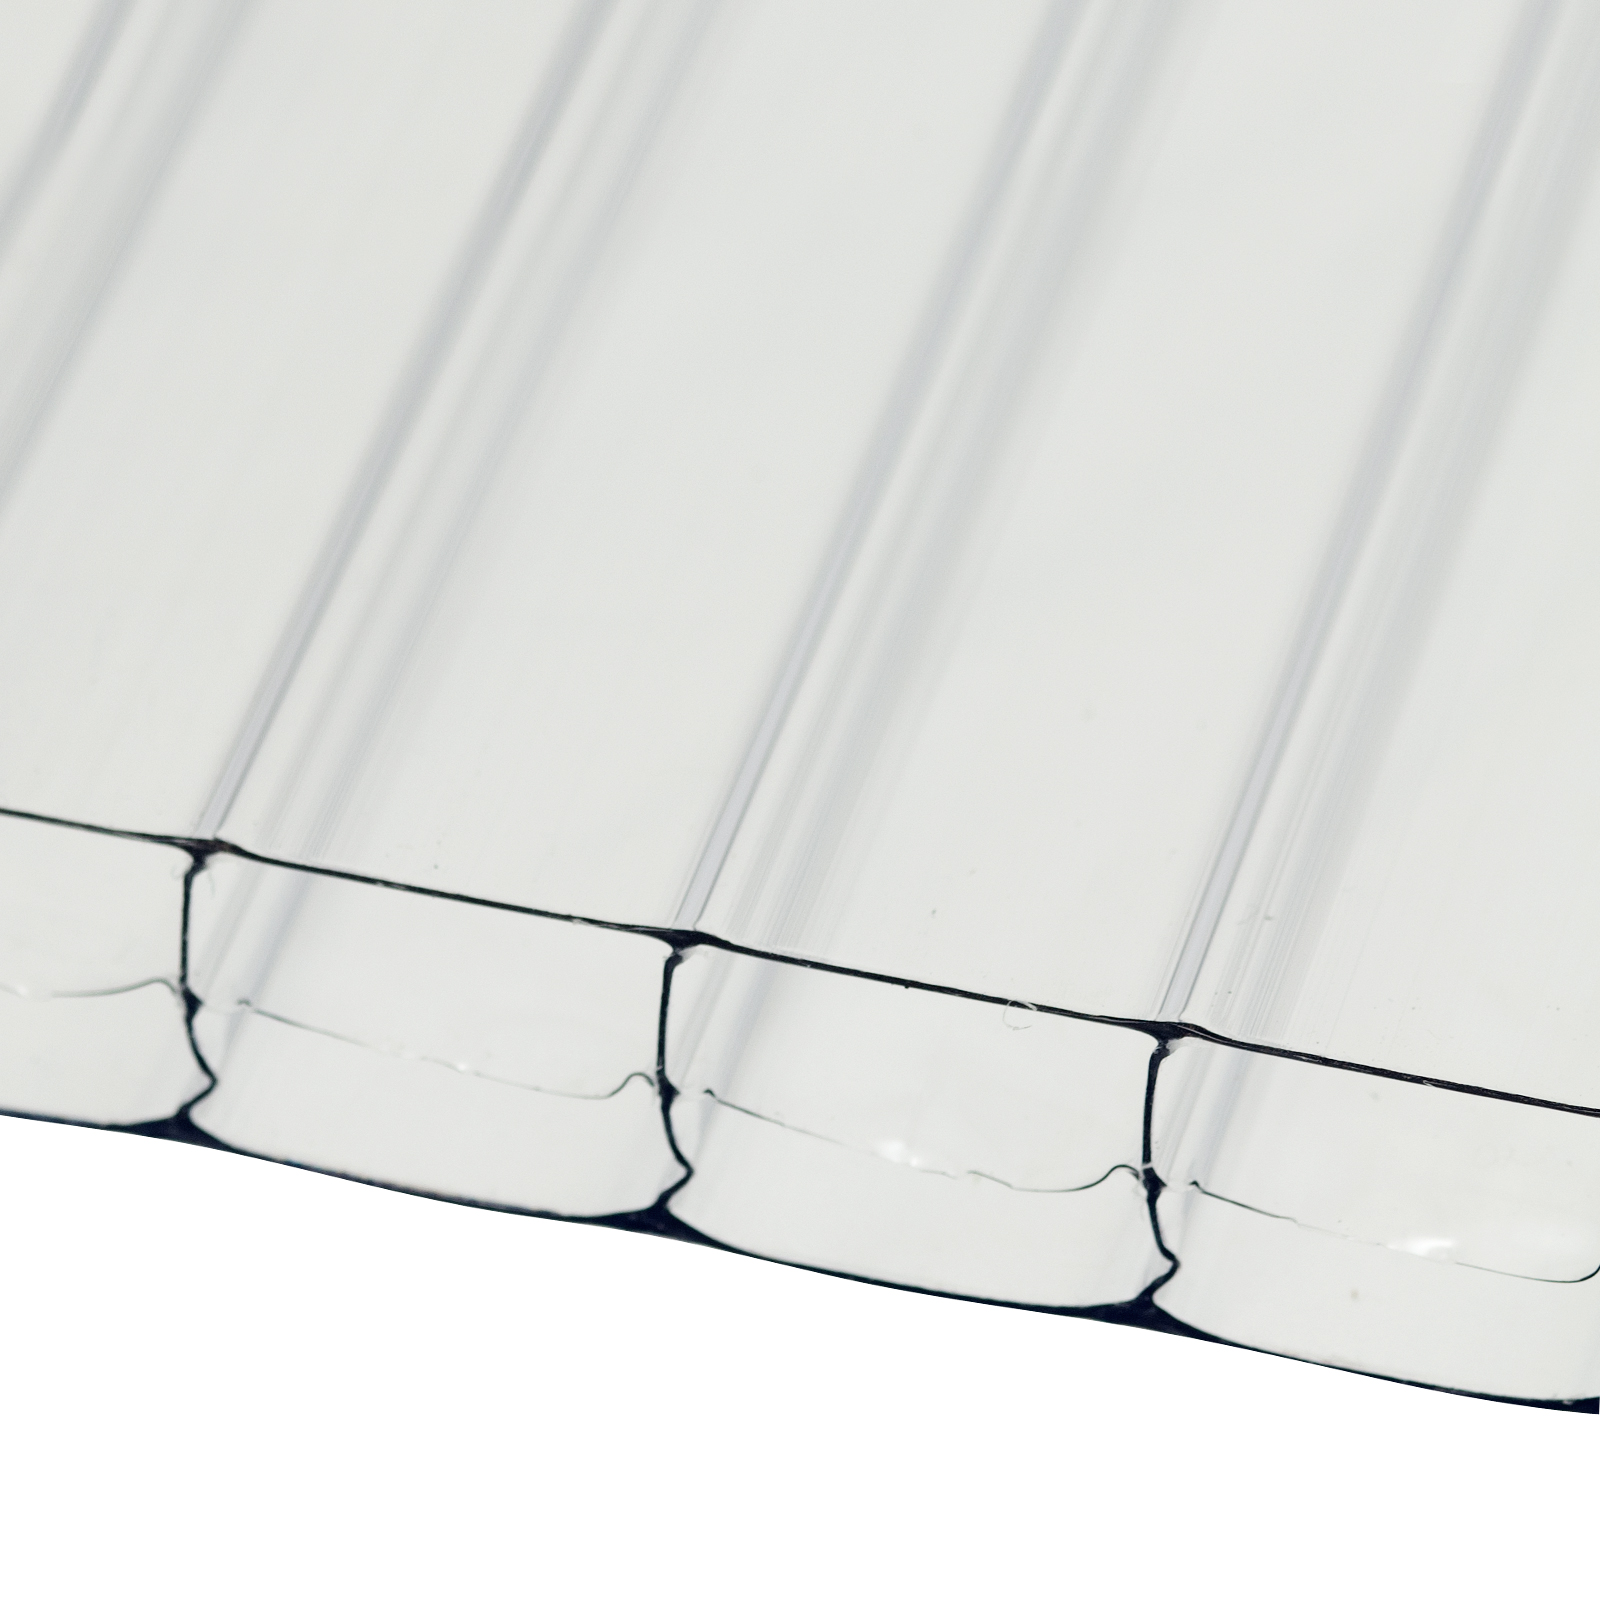 10mm Clear Polycarbonate Multiwall Sheets Truly Pvc